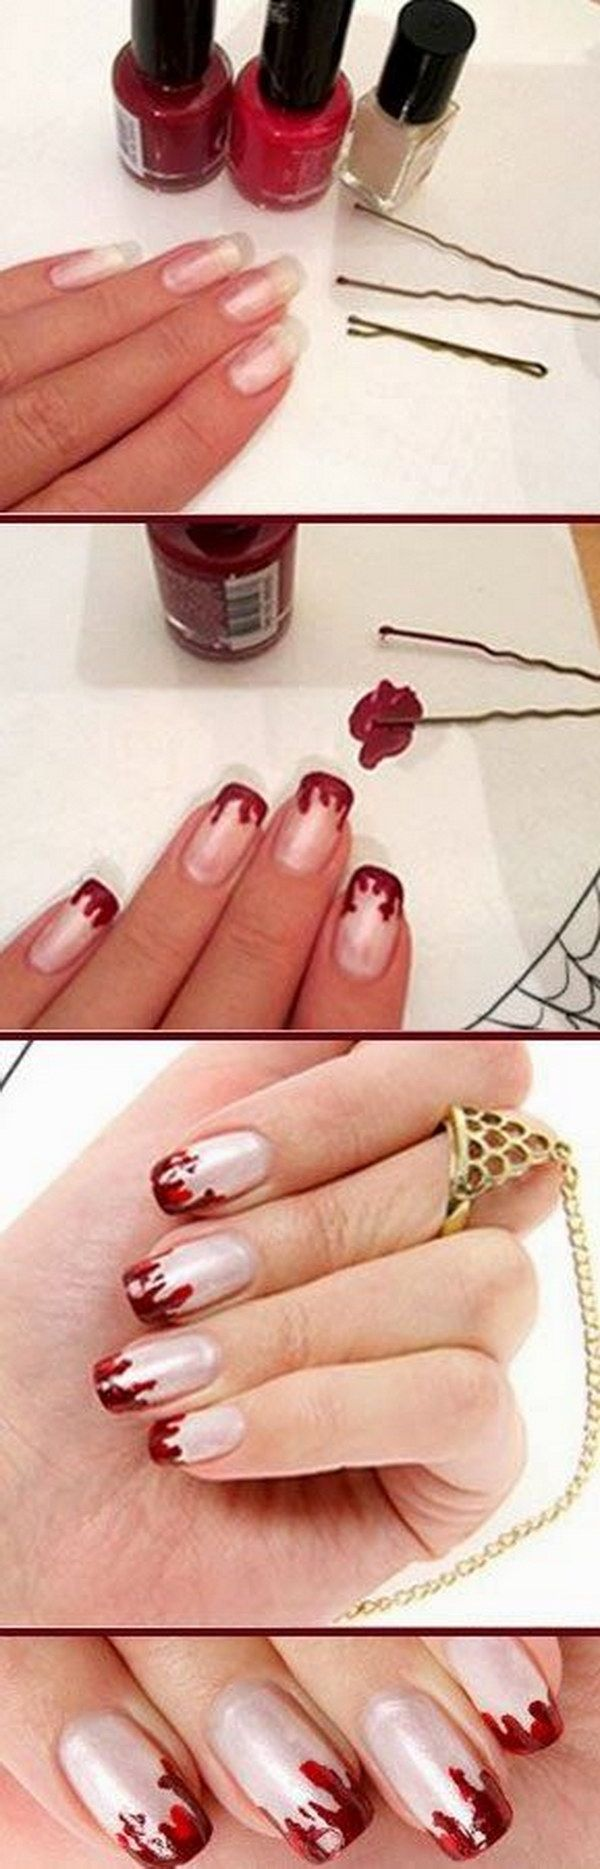 20 Step-by-Step Halloween Nail Artwork Design Tutorials ...